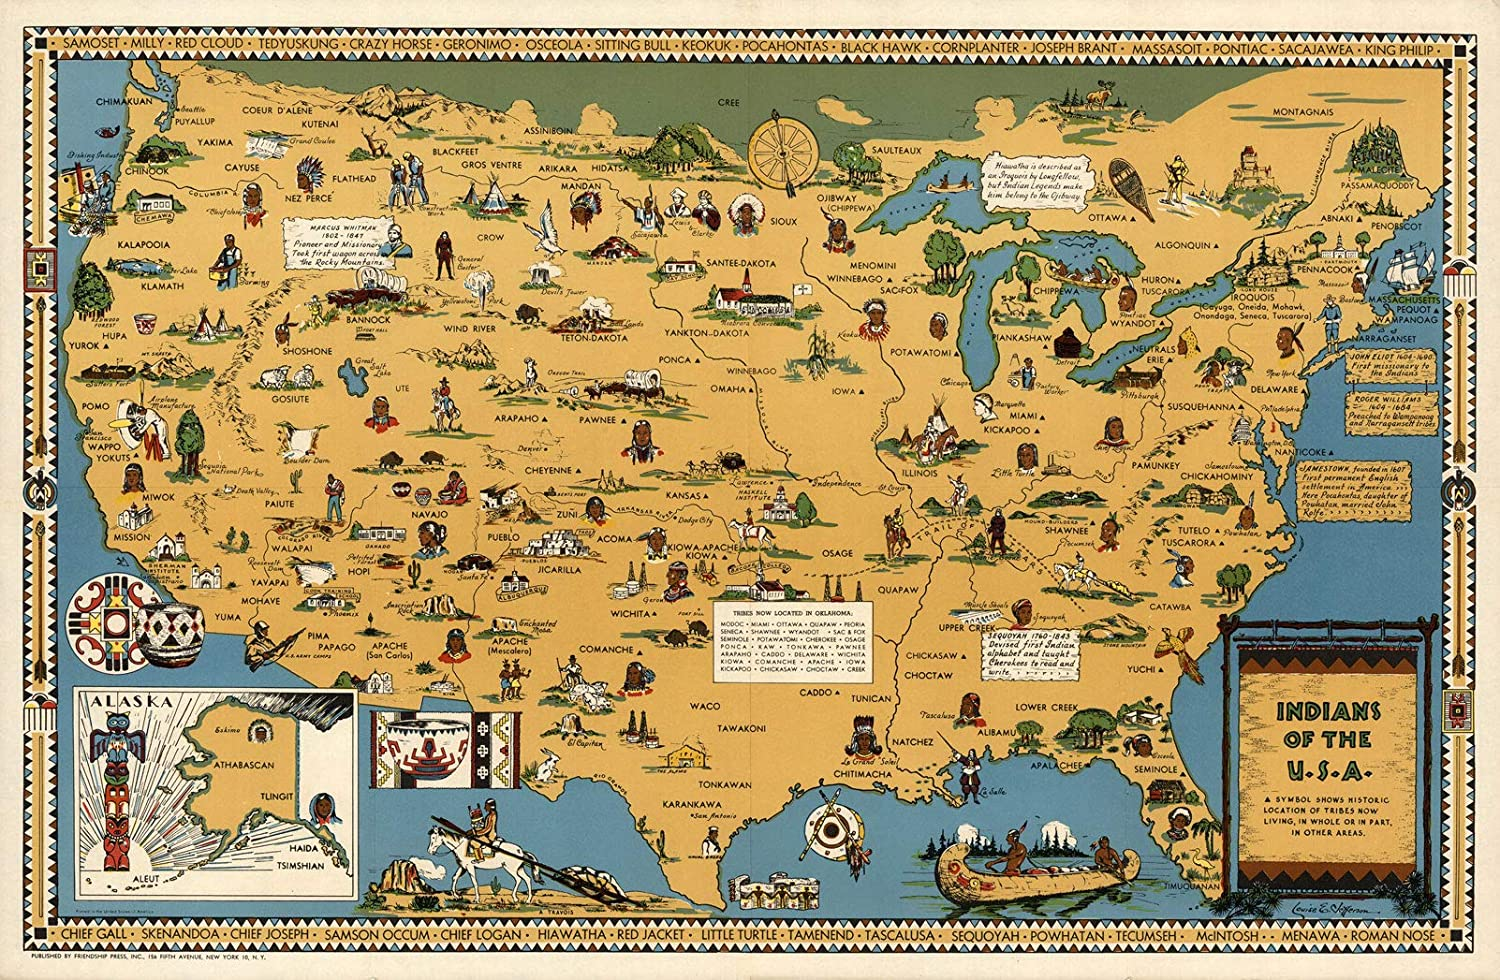 united states indian tribes map Amazon.com: 🔴 USA Native American Indian Tribes | Pictorial Map